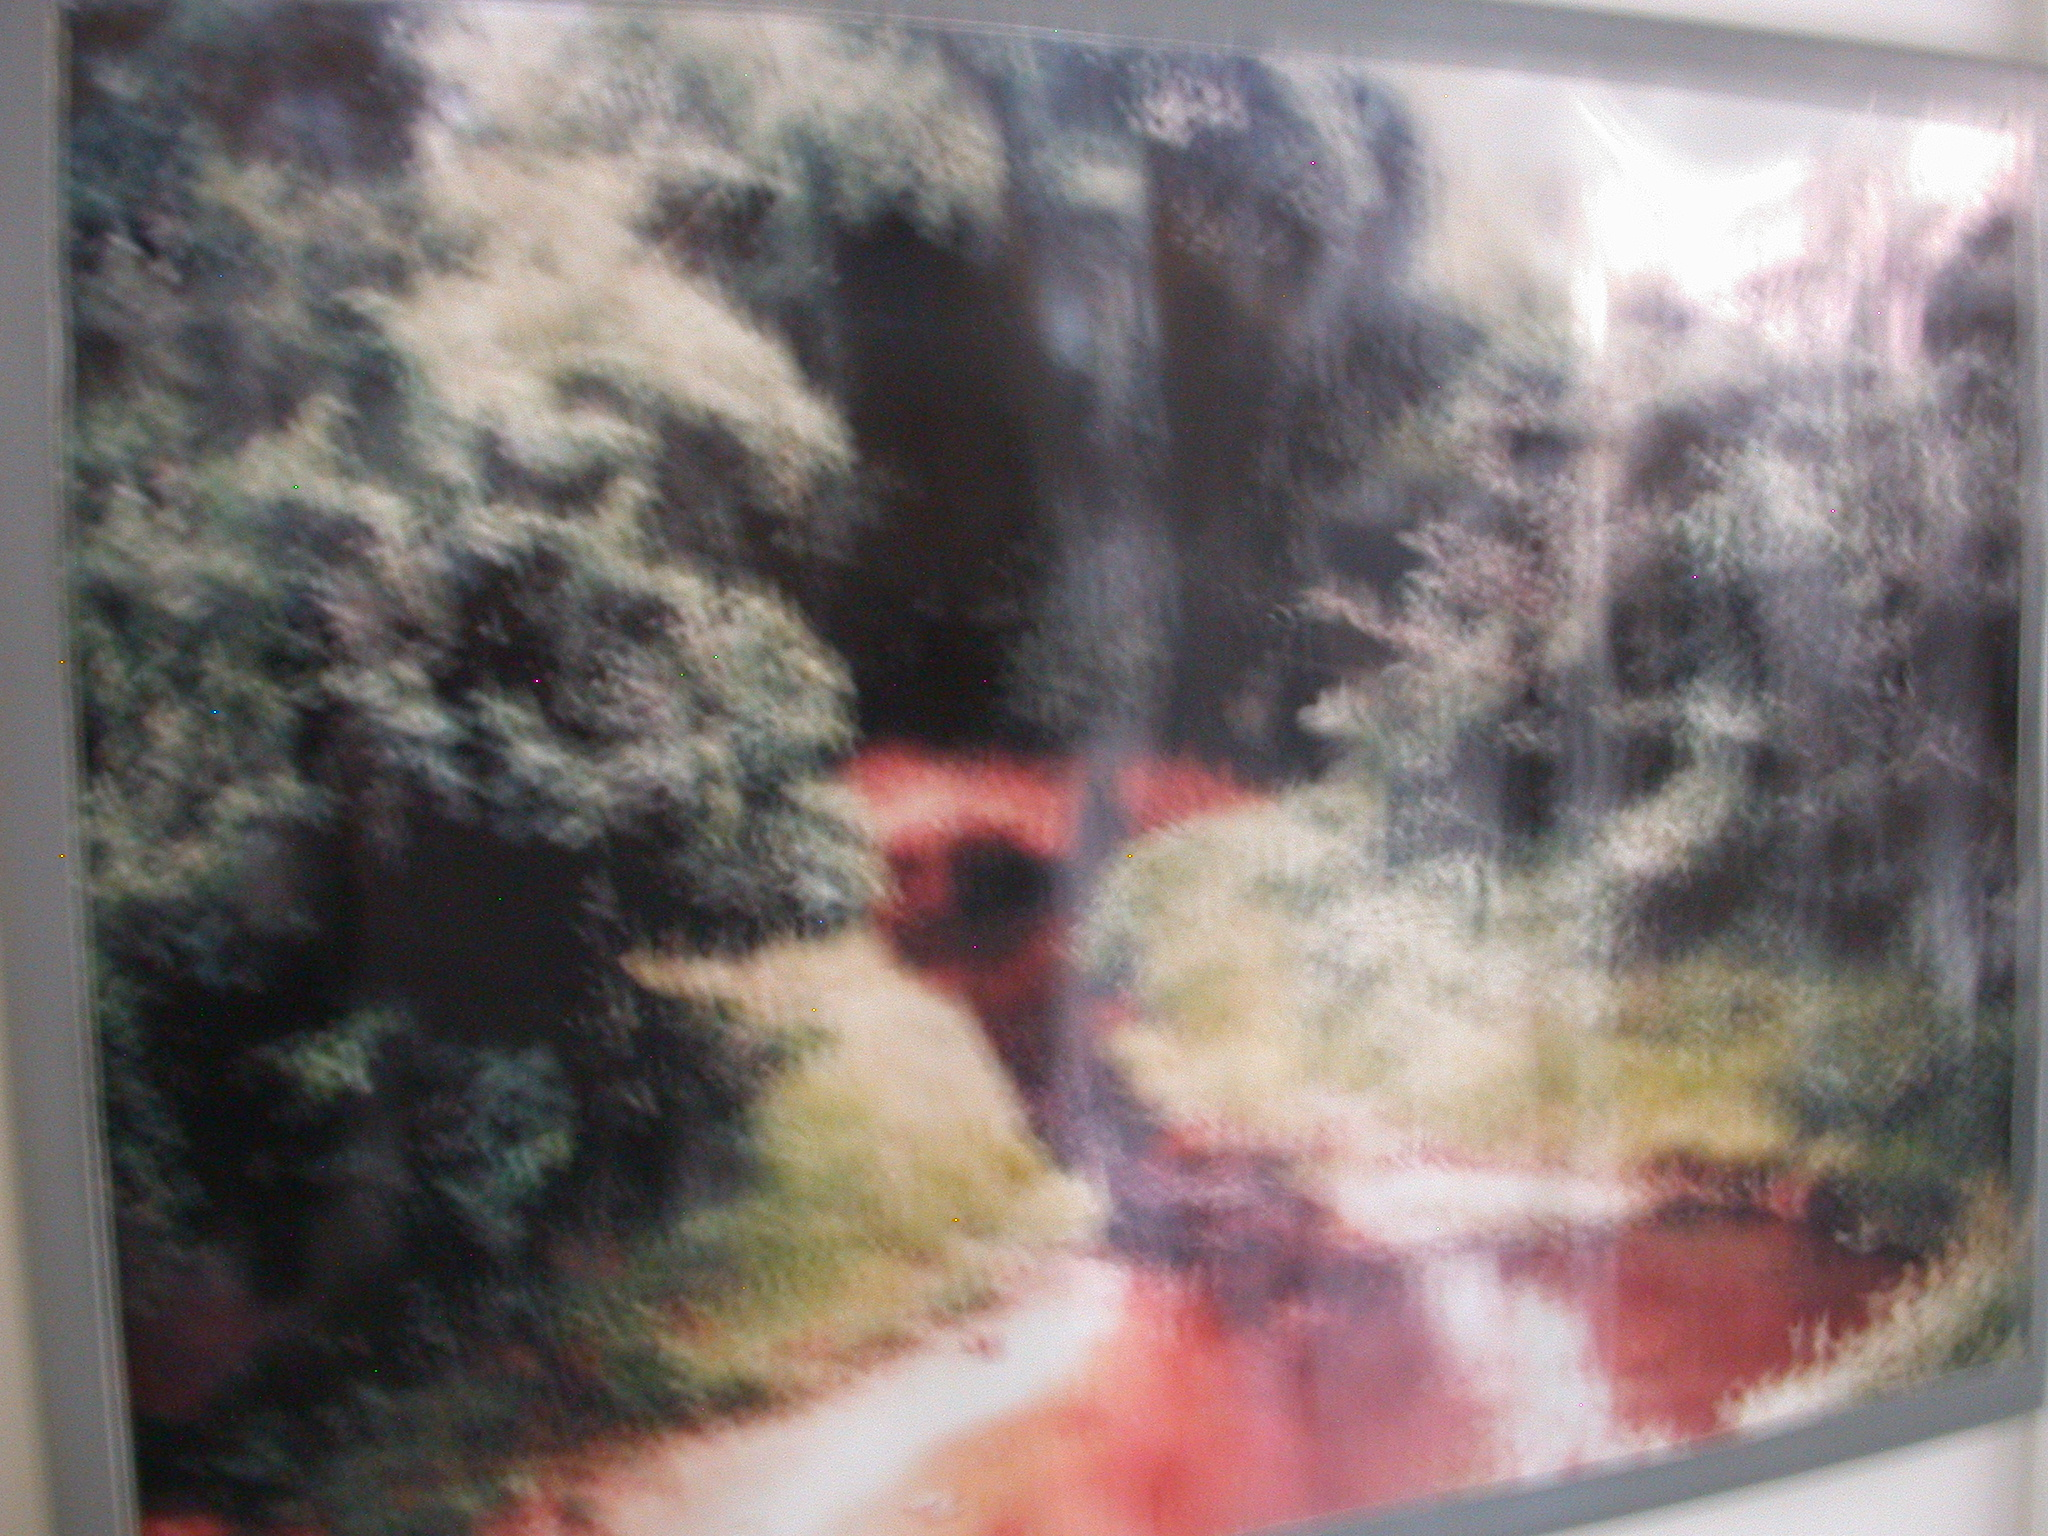 Blurry Picture of Slave River, National Museum, Accra, Ghana